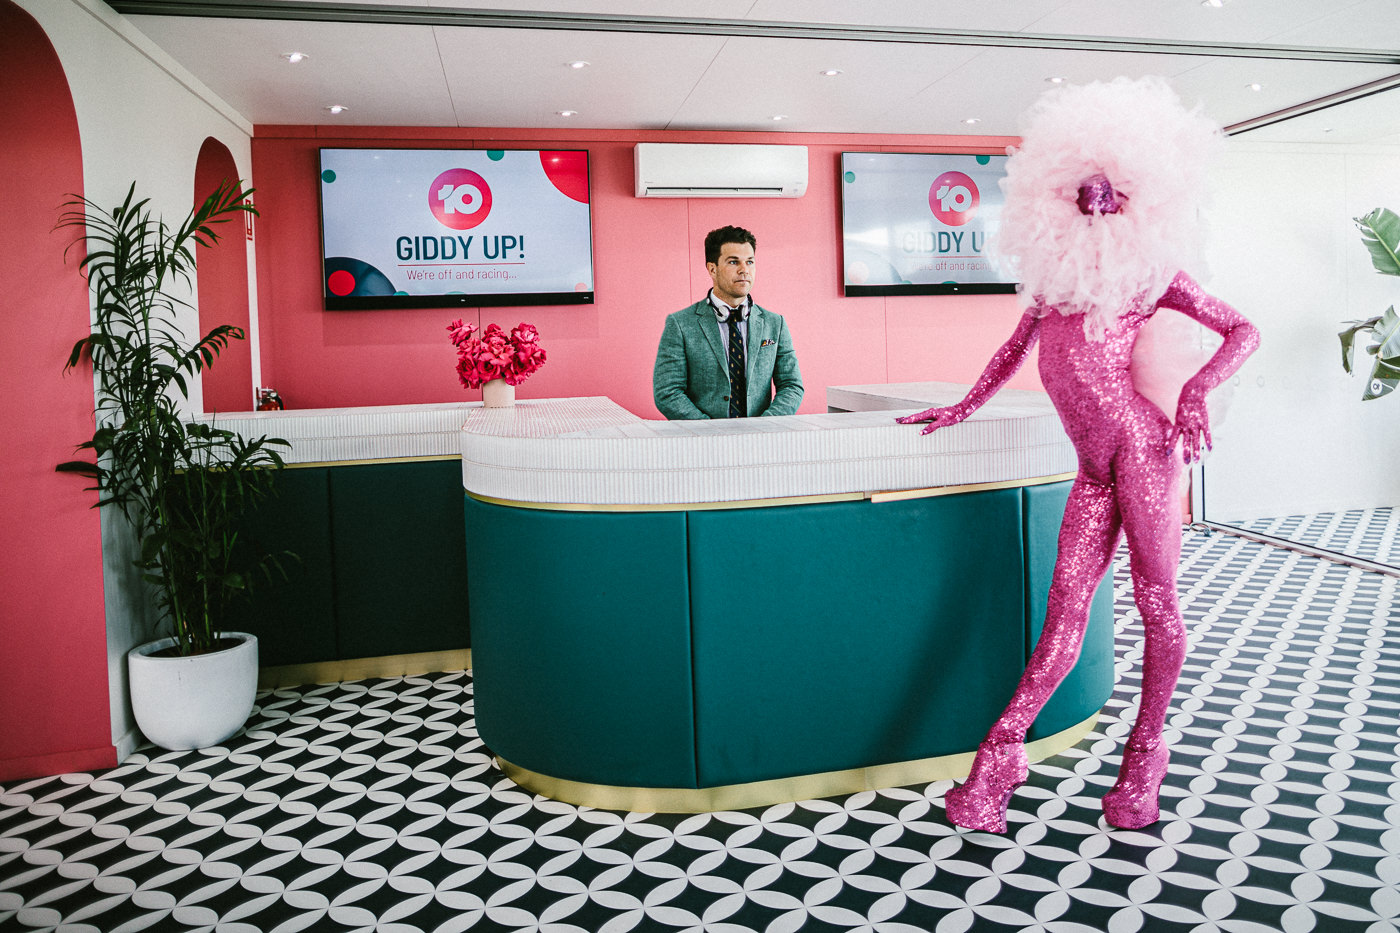 the pink dancer and dj ... don;t ask me wtf